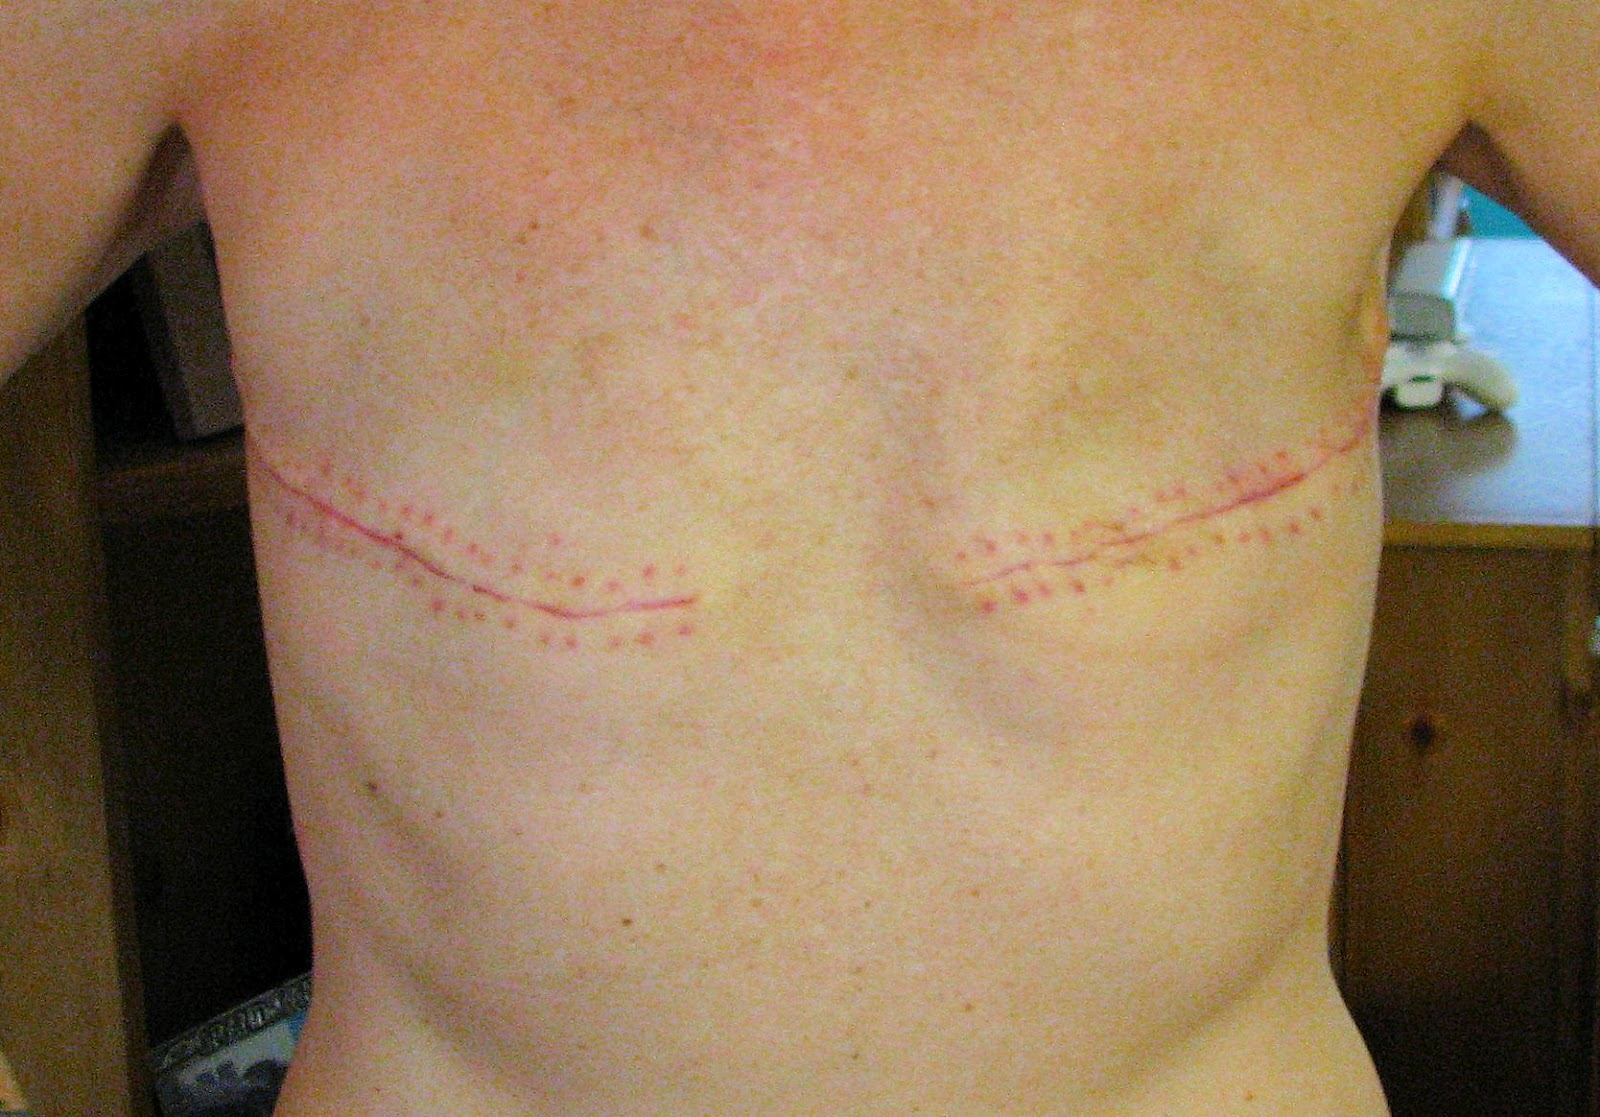 bilateral mastectomy without reconstruction photo - 21 days post-opAfter Mastectomy Photos